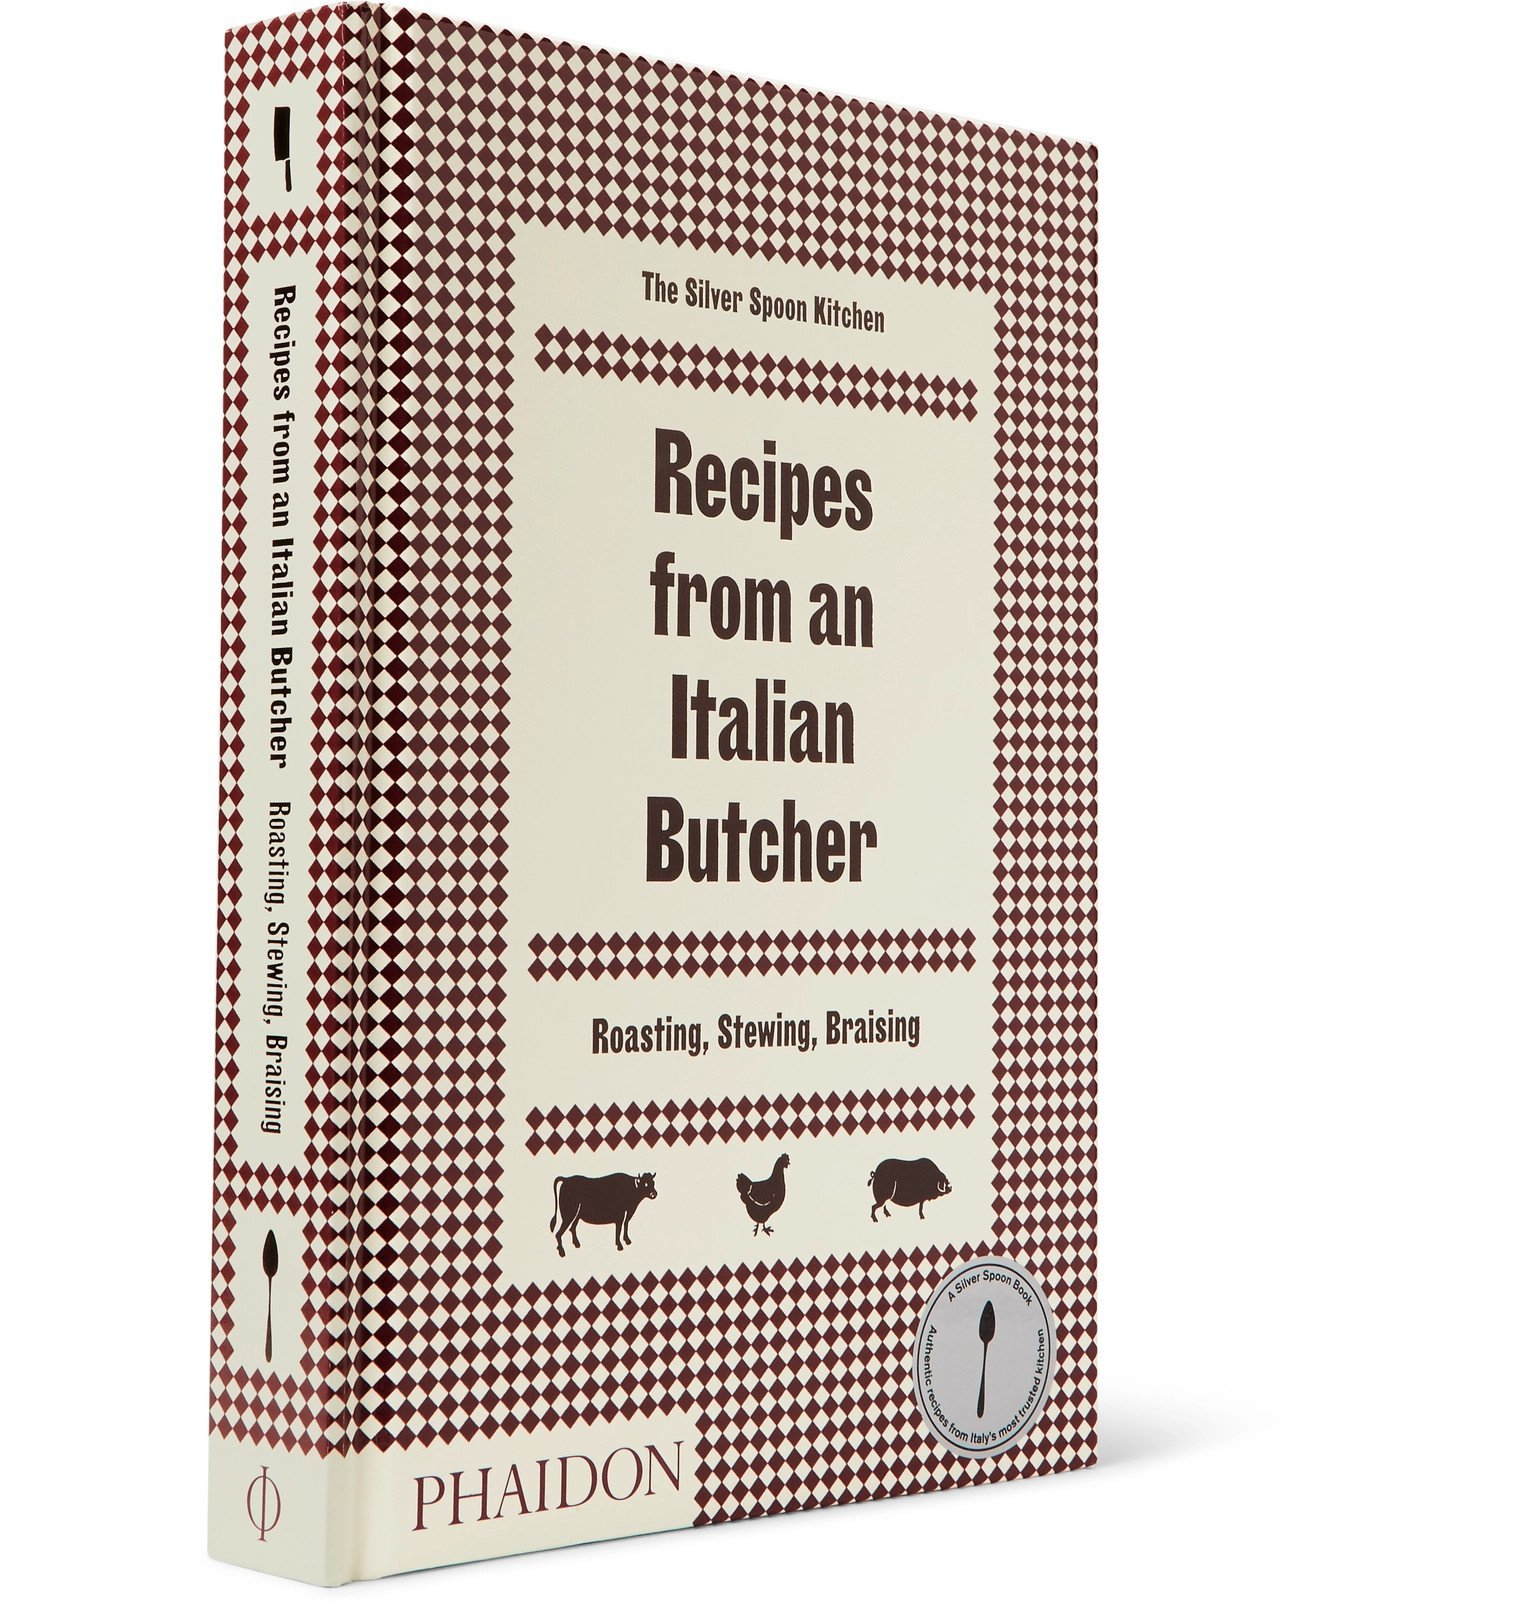 Photo: Phaidon - Recipes From An Italian Butcher Hardcover Book - Multi